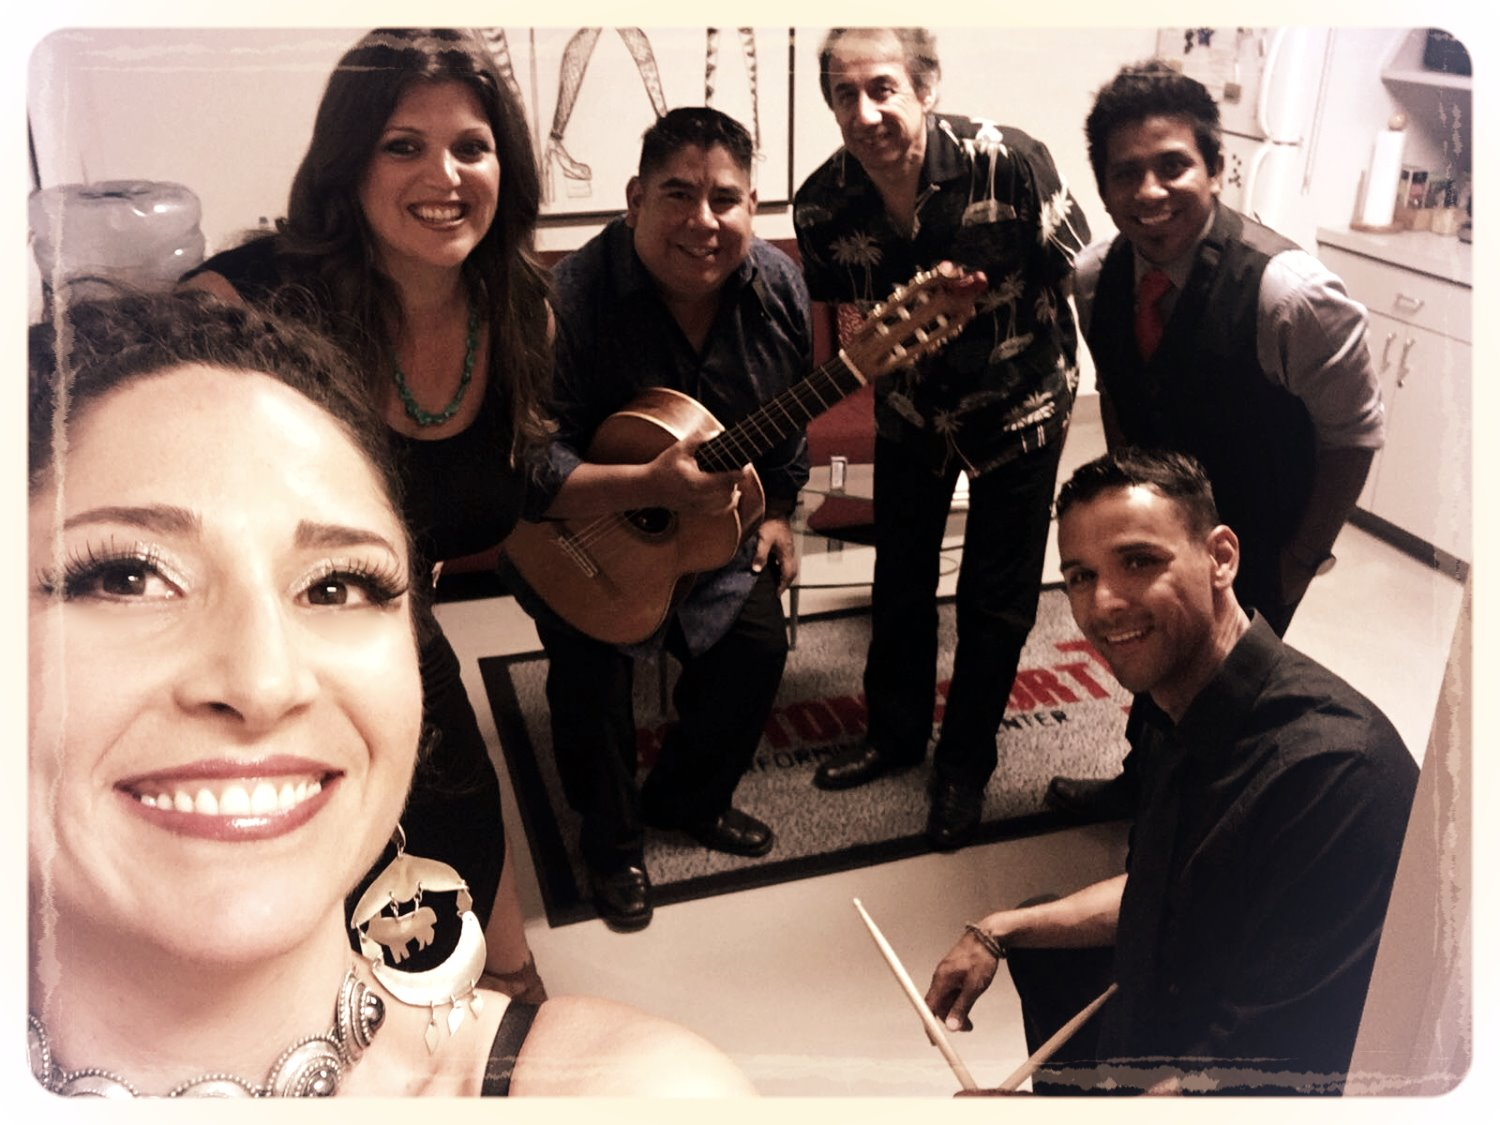 Backstage with my beautiful band...